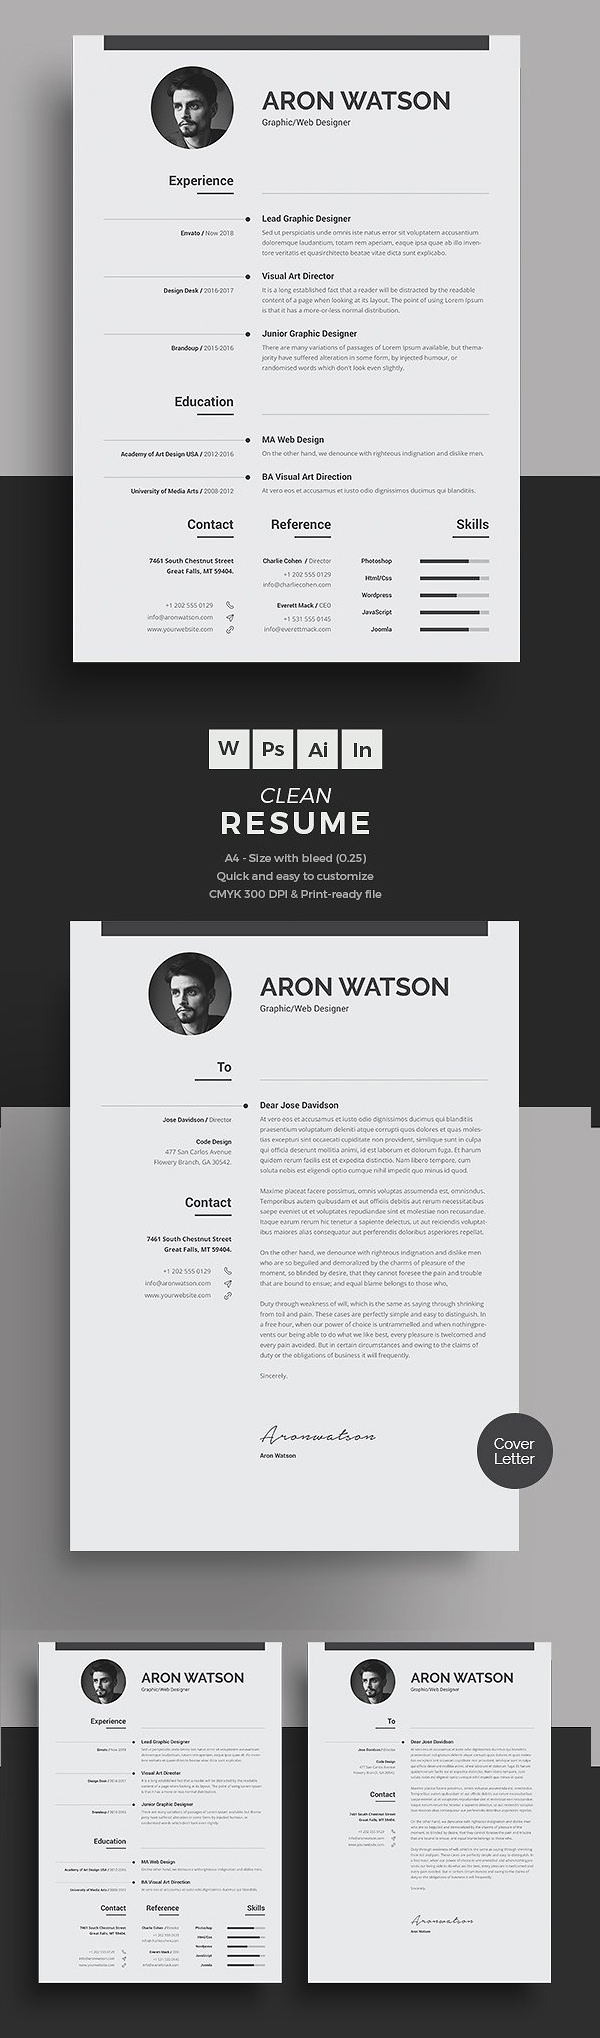 best resume templates for design graphic junction designs typical questions chef Resume Best Resume Designs 2015